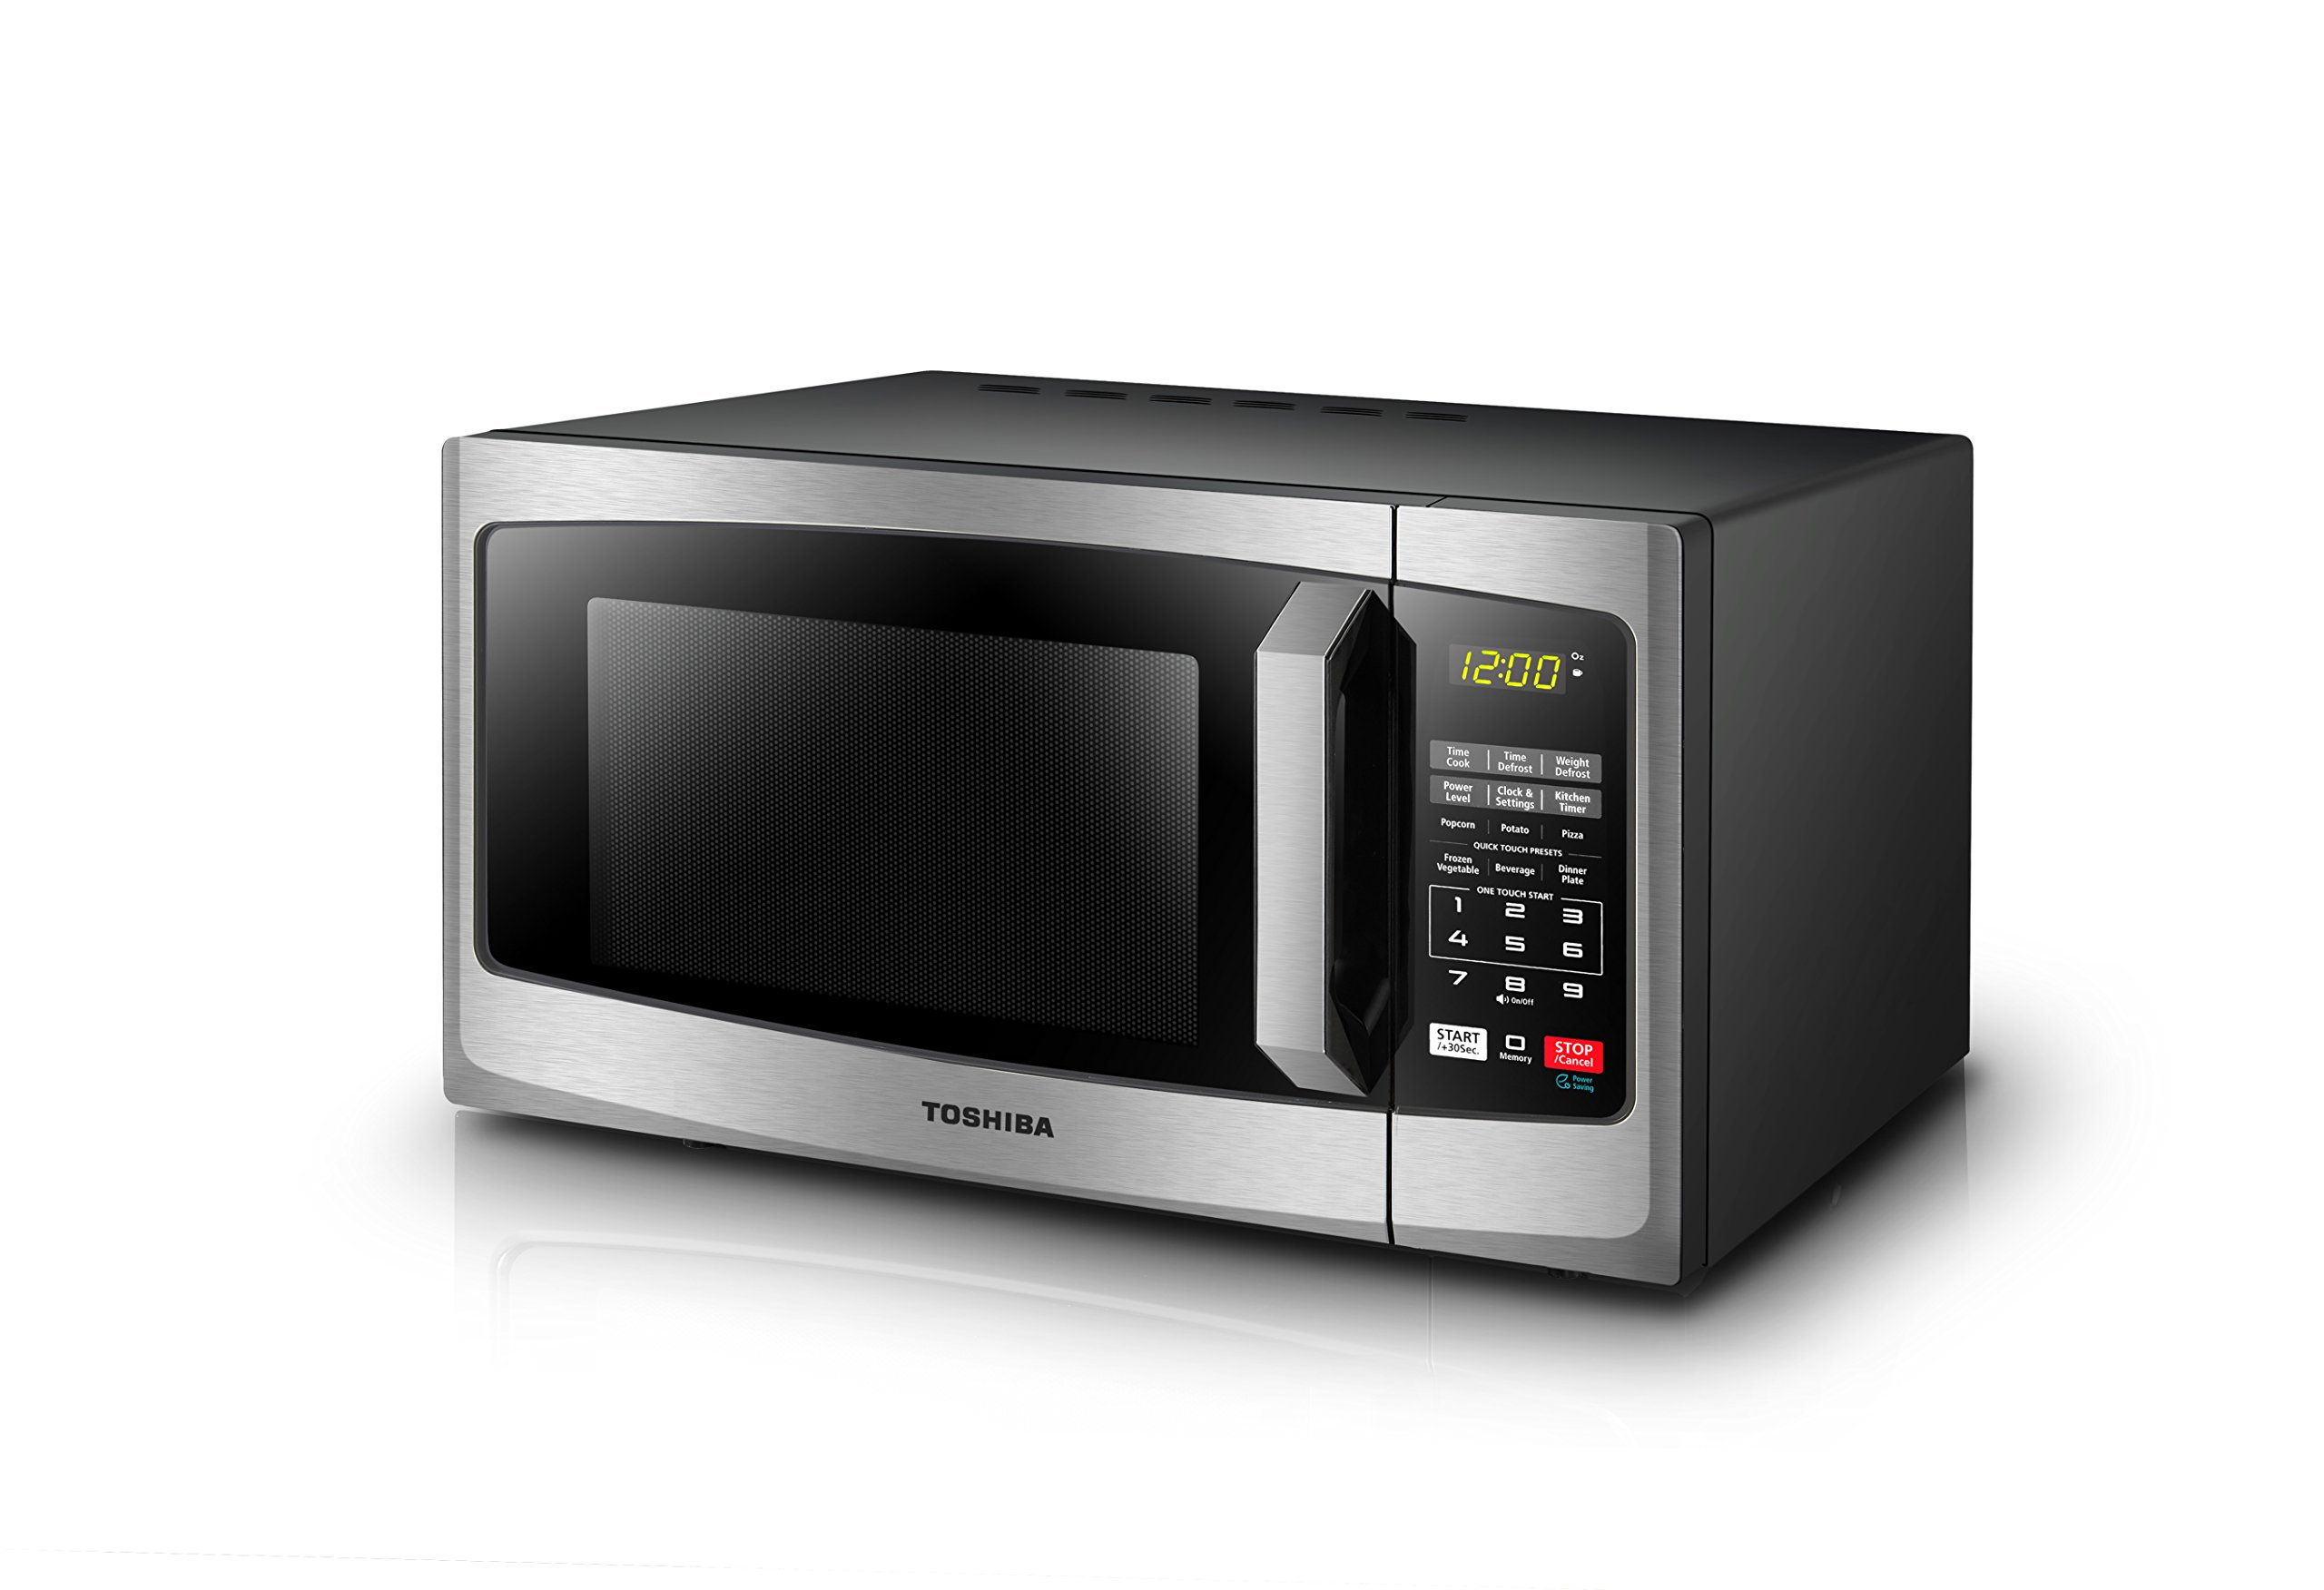 Toshiba EM925A5A-SS Microwave Oven with Sound On/Off ECO Mode and LED Lighting 0.9 cu. ft. Stainless Steel by Toshiba (Image #3)